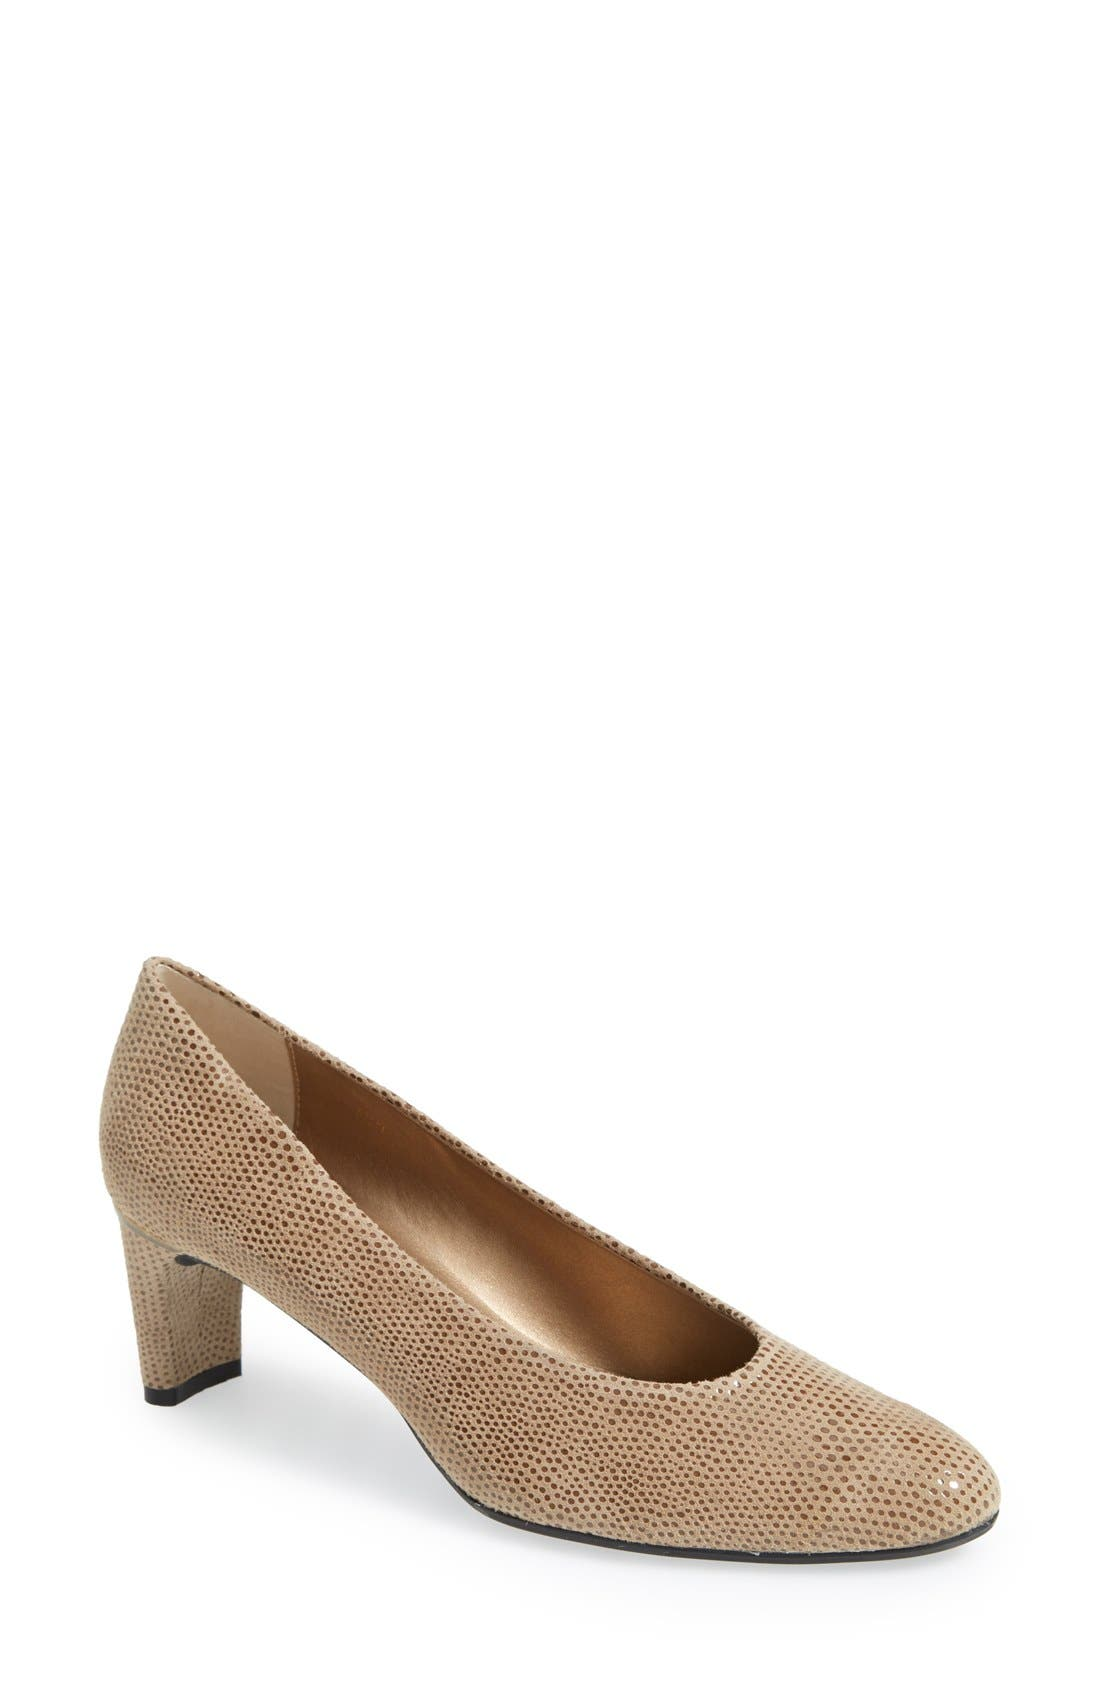 'Dayle' Pump,                             Main thumbnail 1, color,                             Taupe Print Leather